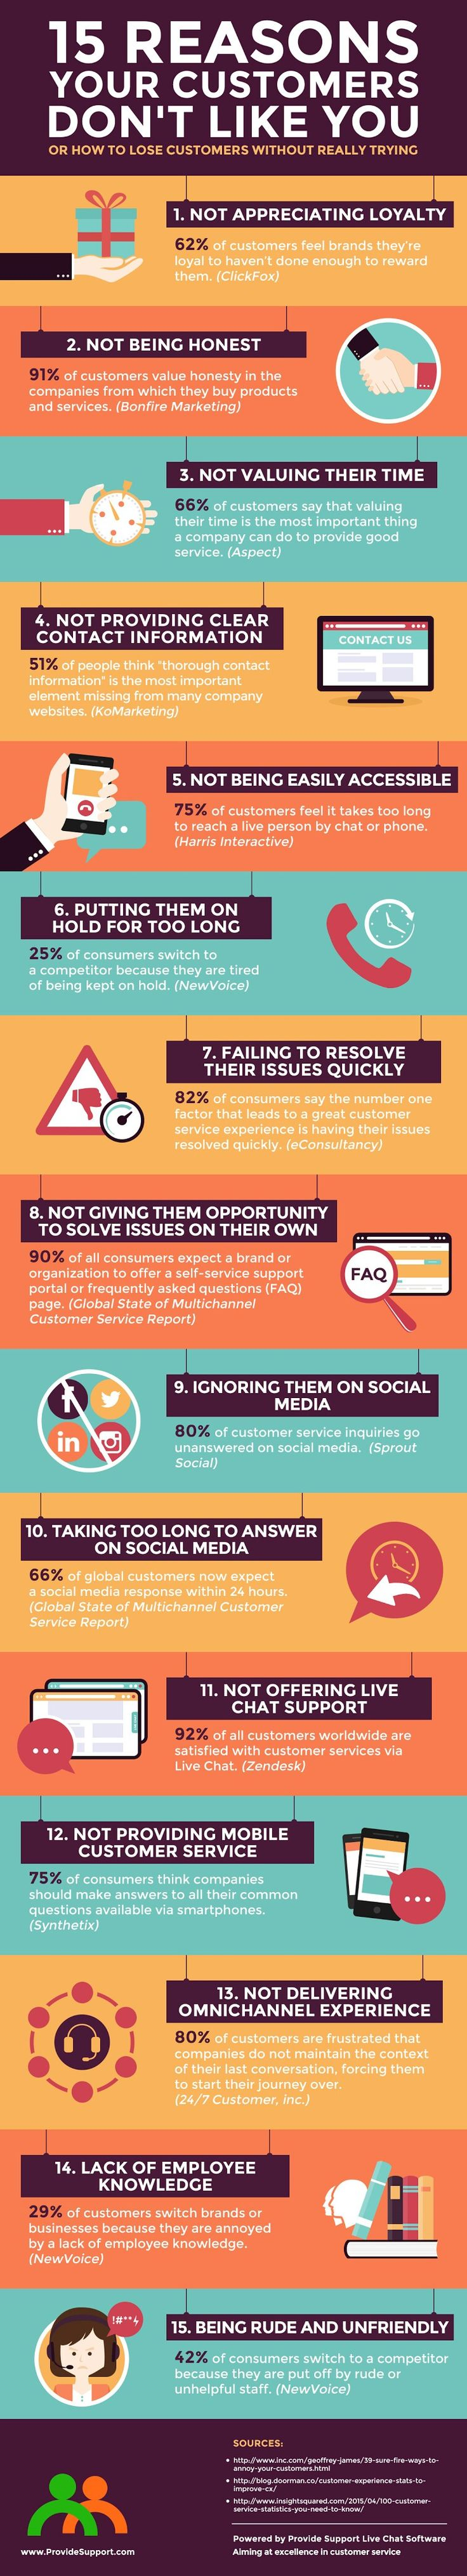 A great pin from our #goole+ friend.  This info graphic speaks about why customers do not like you?  #crm #smm #solvoguru